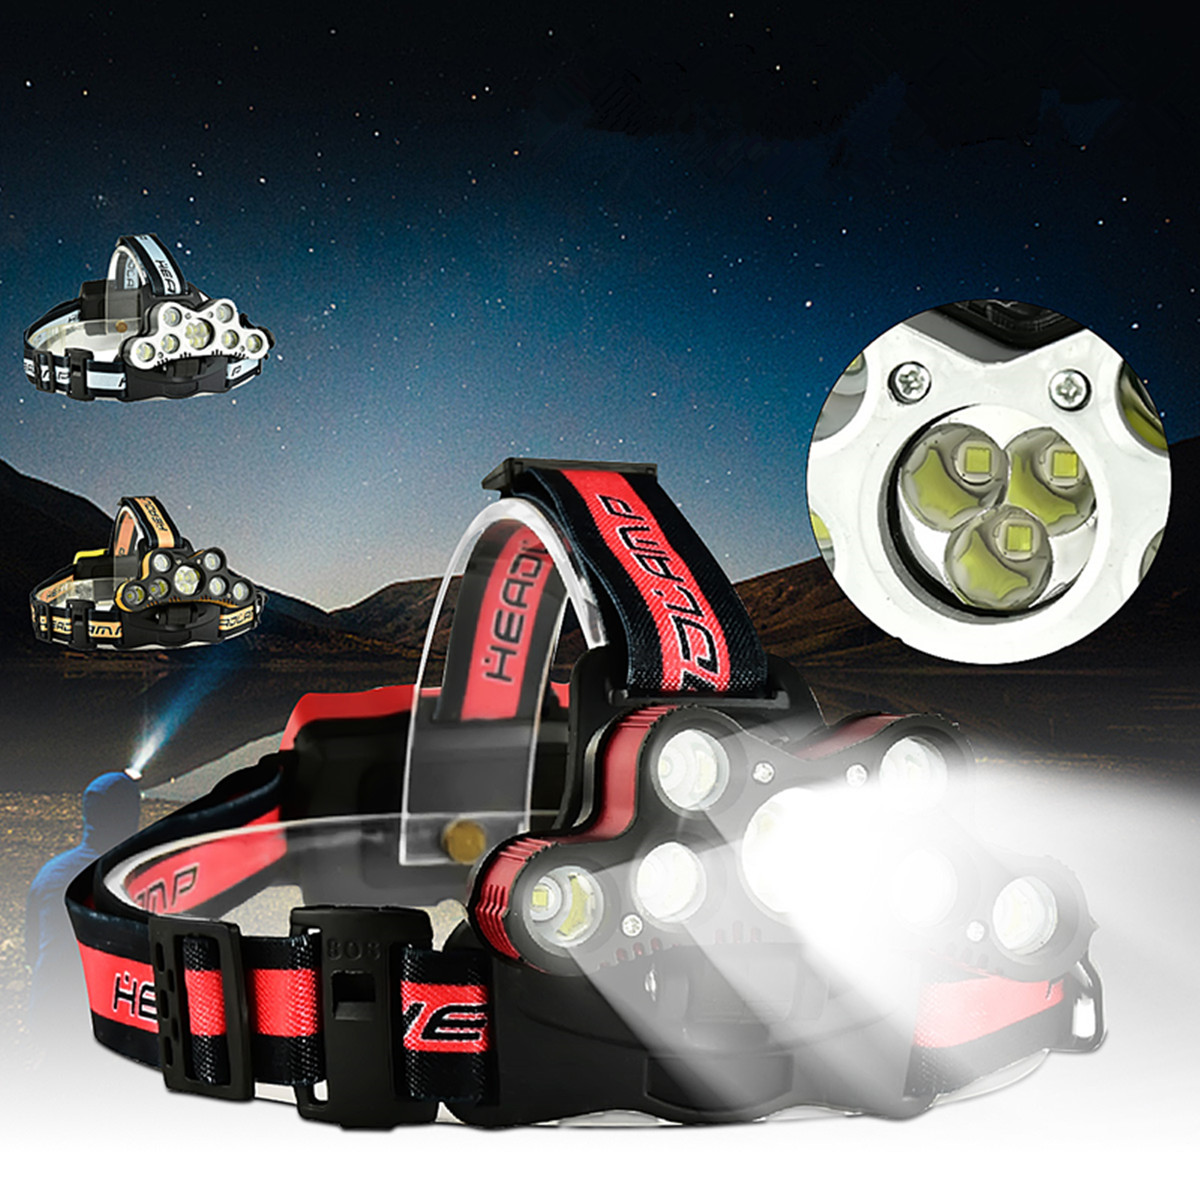 6000Lumens 9xT6 LED Waterproof Zoomable Headlight Headlamp Rechargeable USB with SOS Help Whistle 6Modes For Camping Hiking